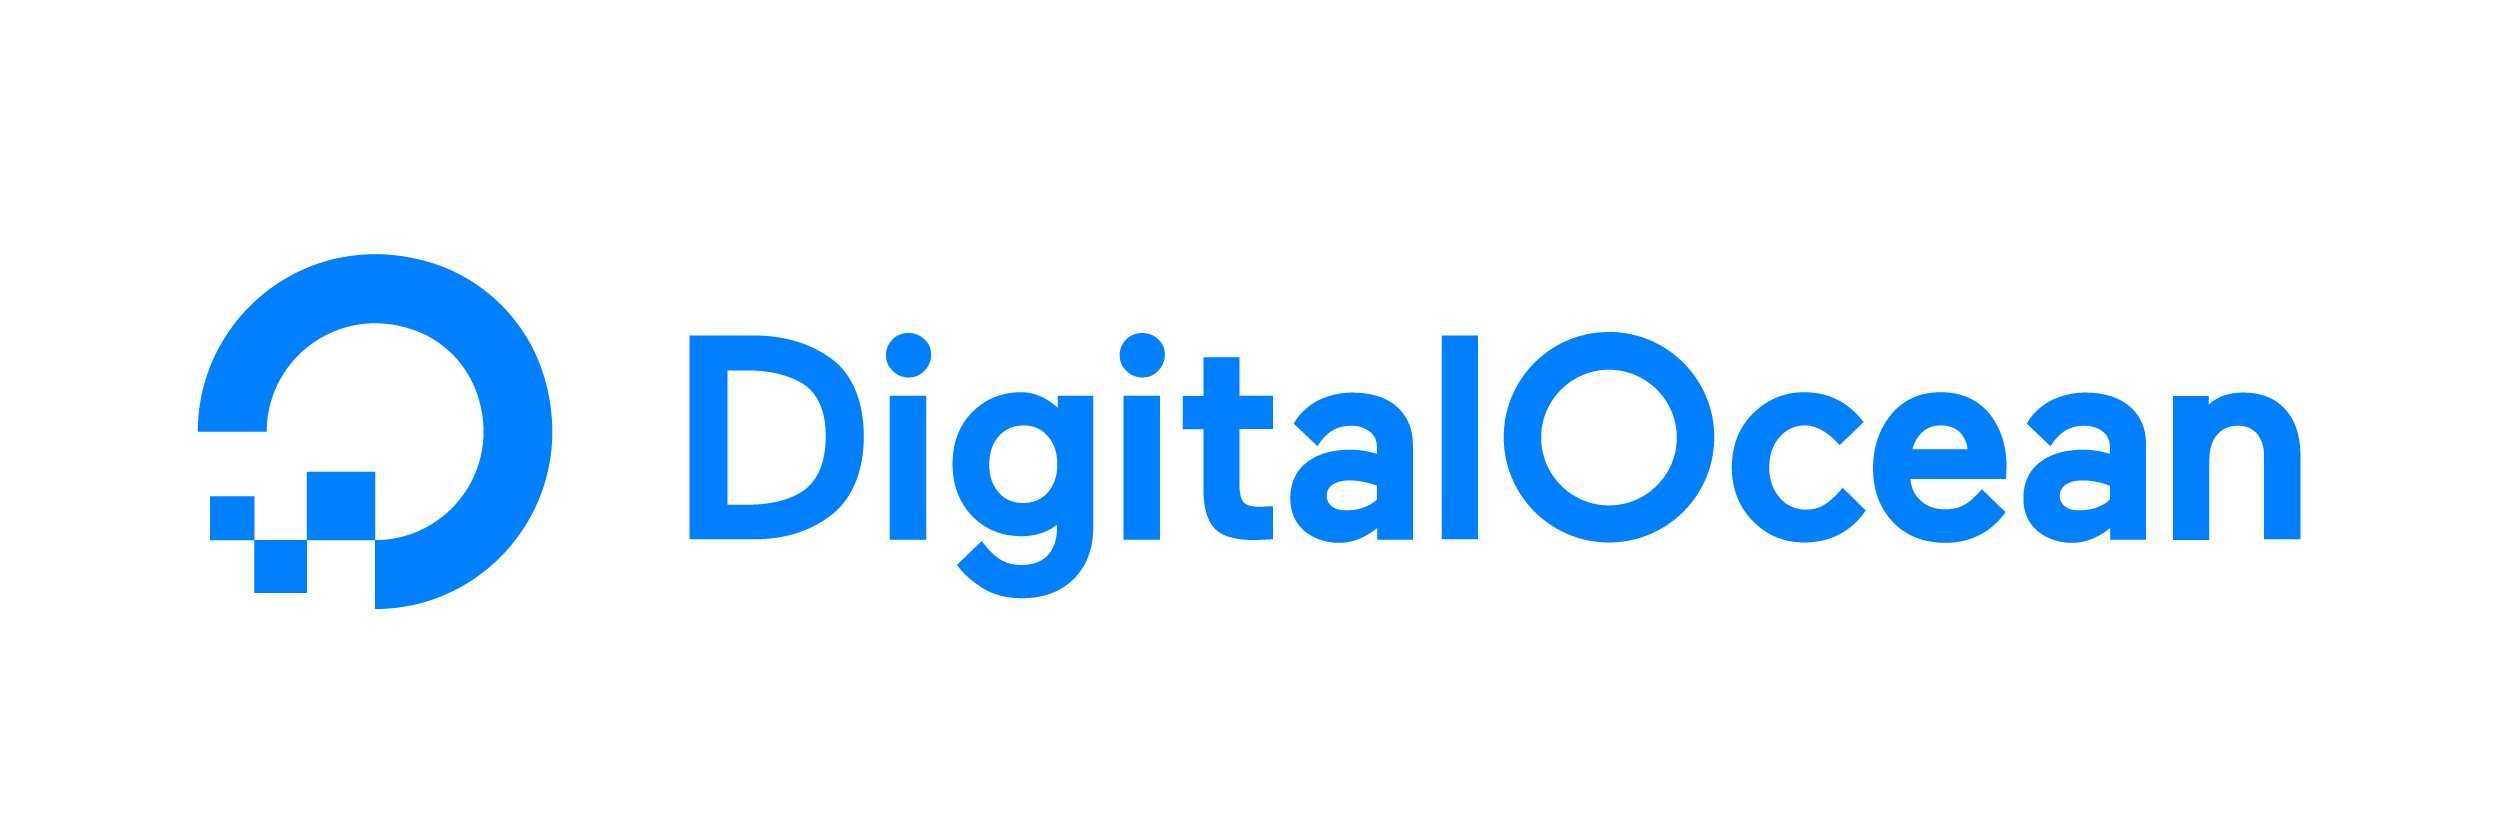 partner logos in white rectangles-Digital Ocean